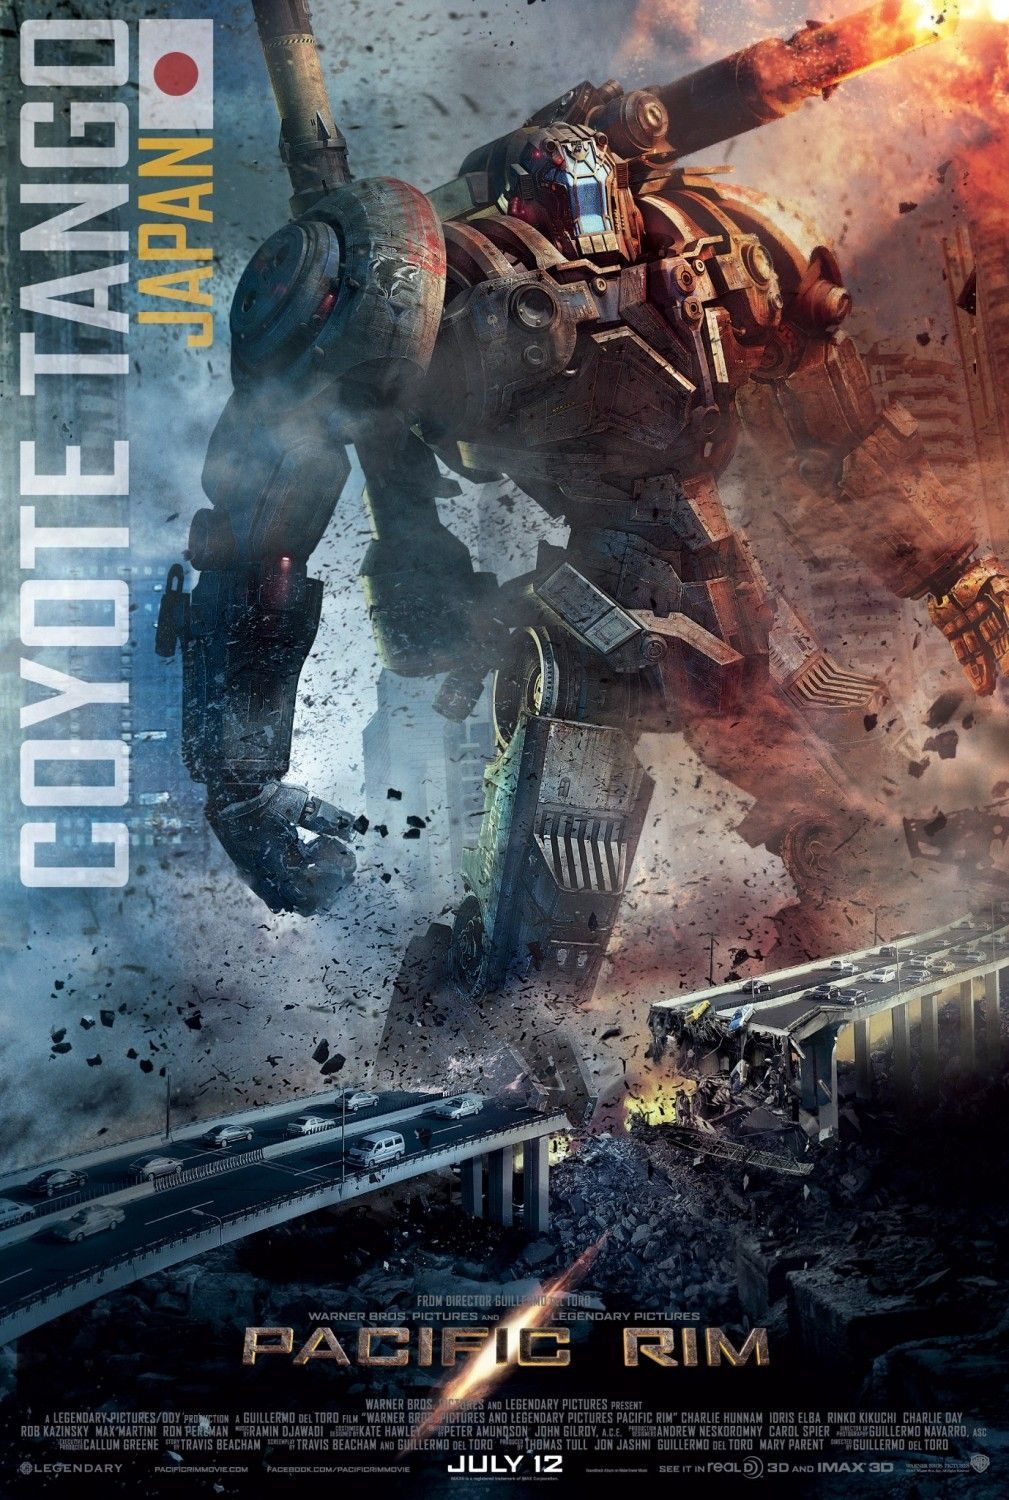 New Pacific Rim movie poster! Coyote Tango - Japan